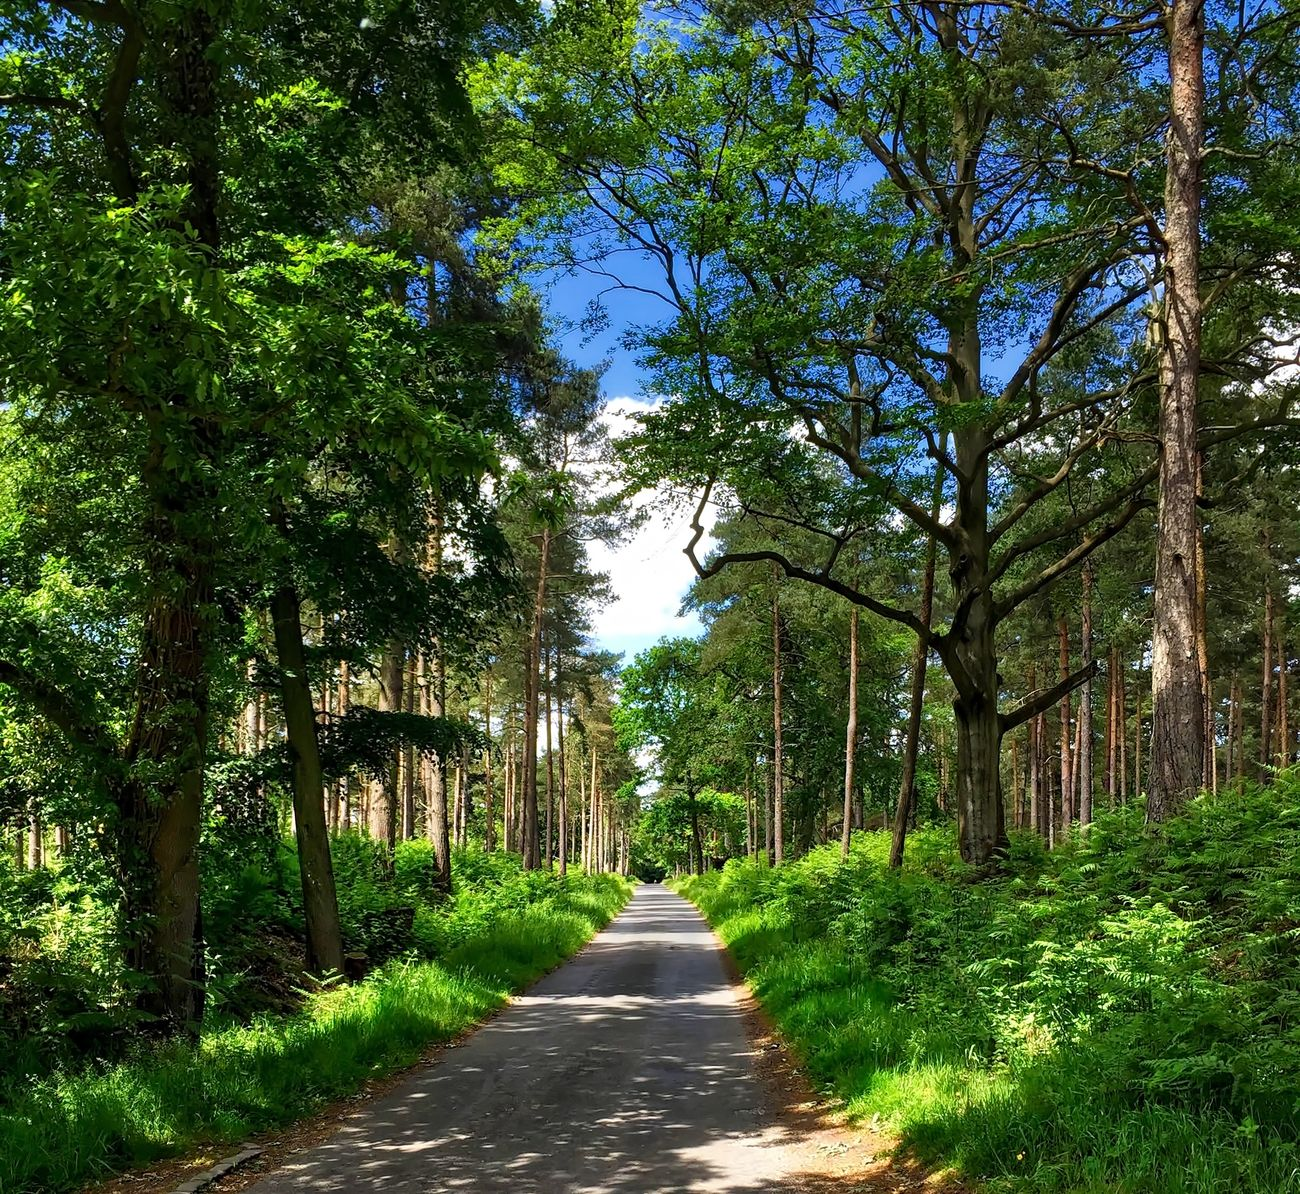 A road in the country Beauty In Nature Day Footpath Growth Nature No People Outdoors Scenics The Way Forward Tree